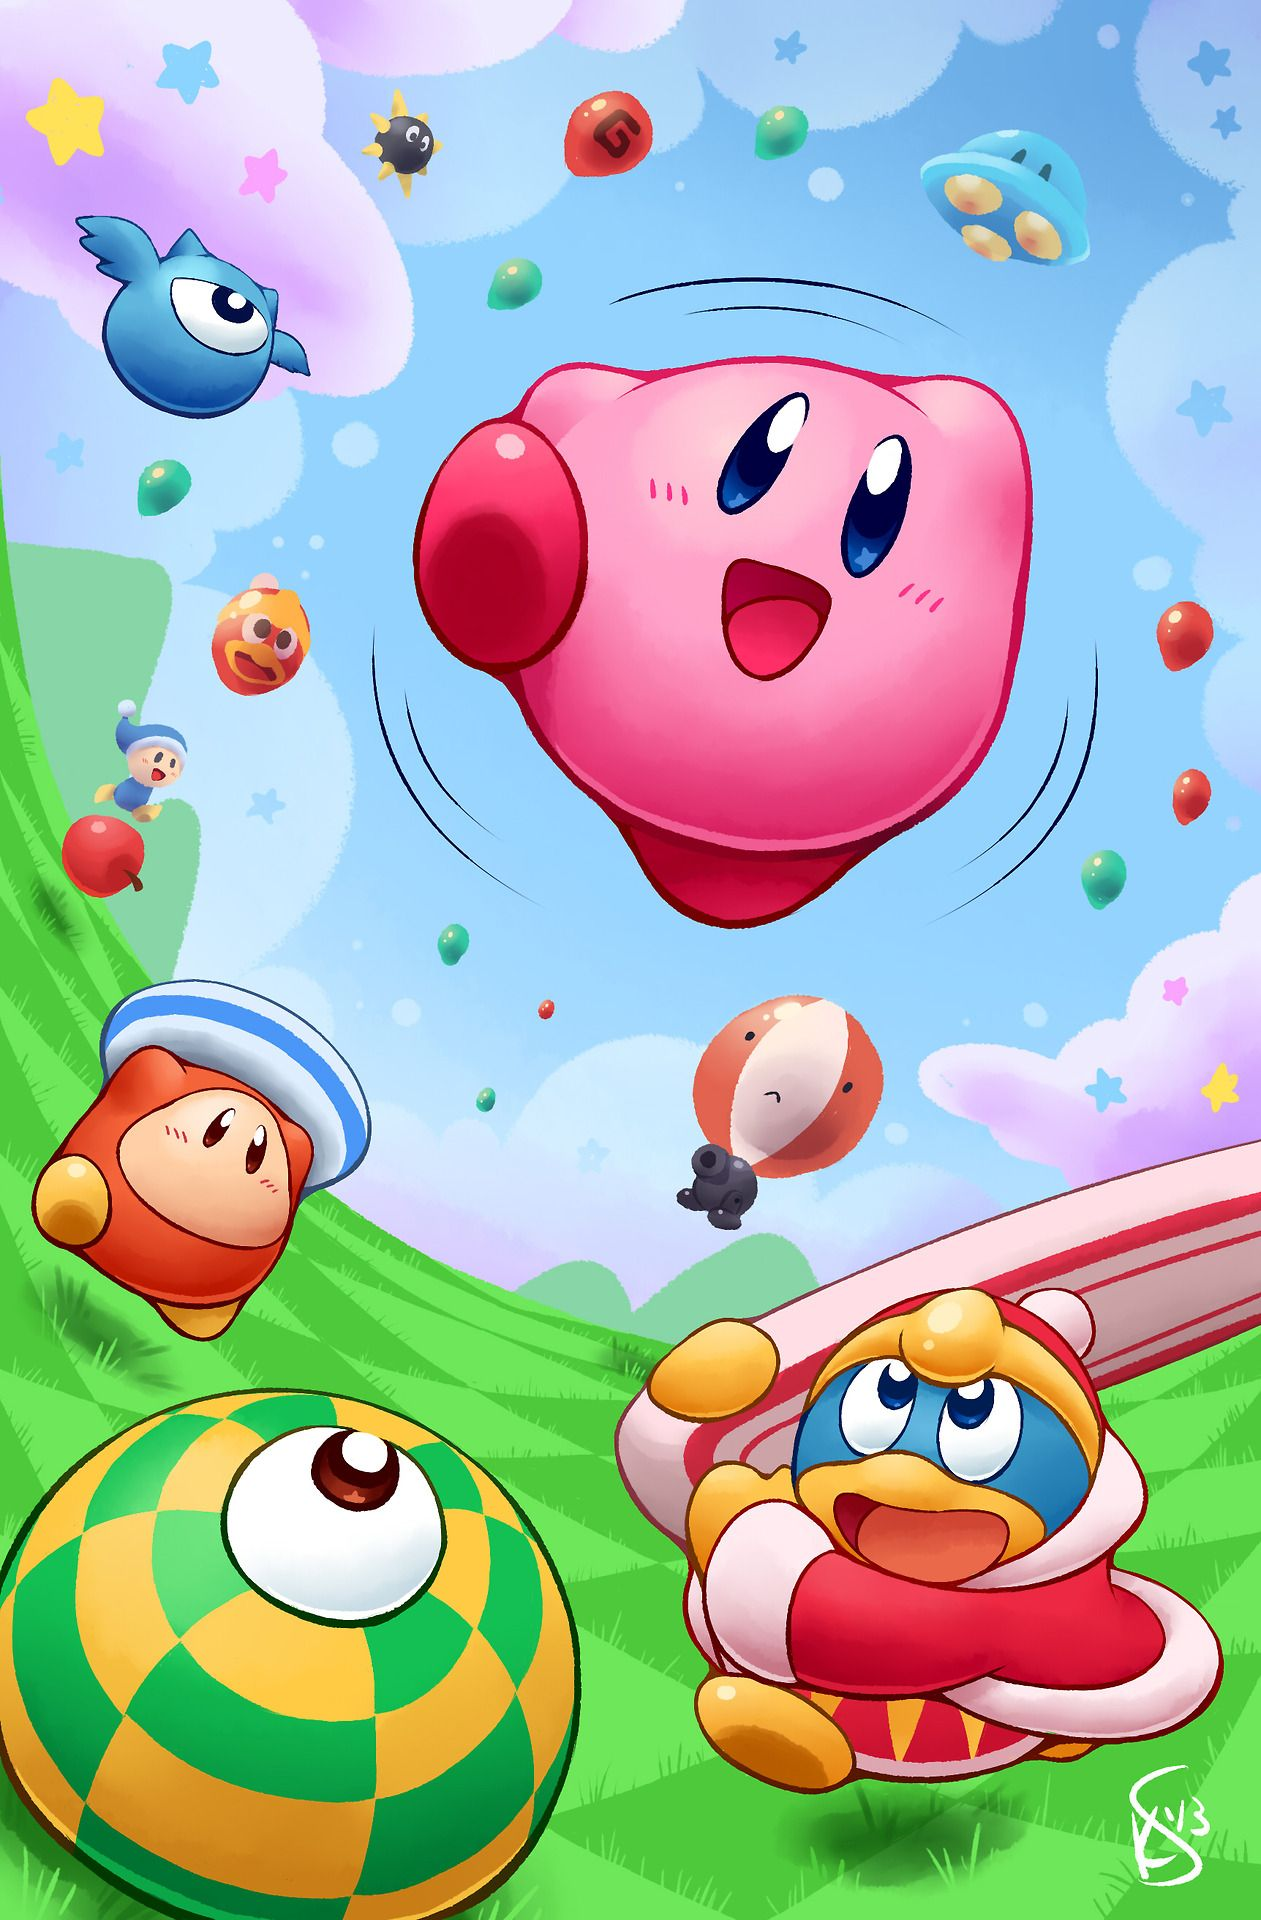 Kirby by Torkirby